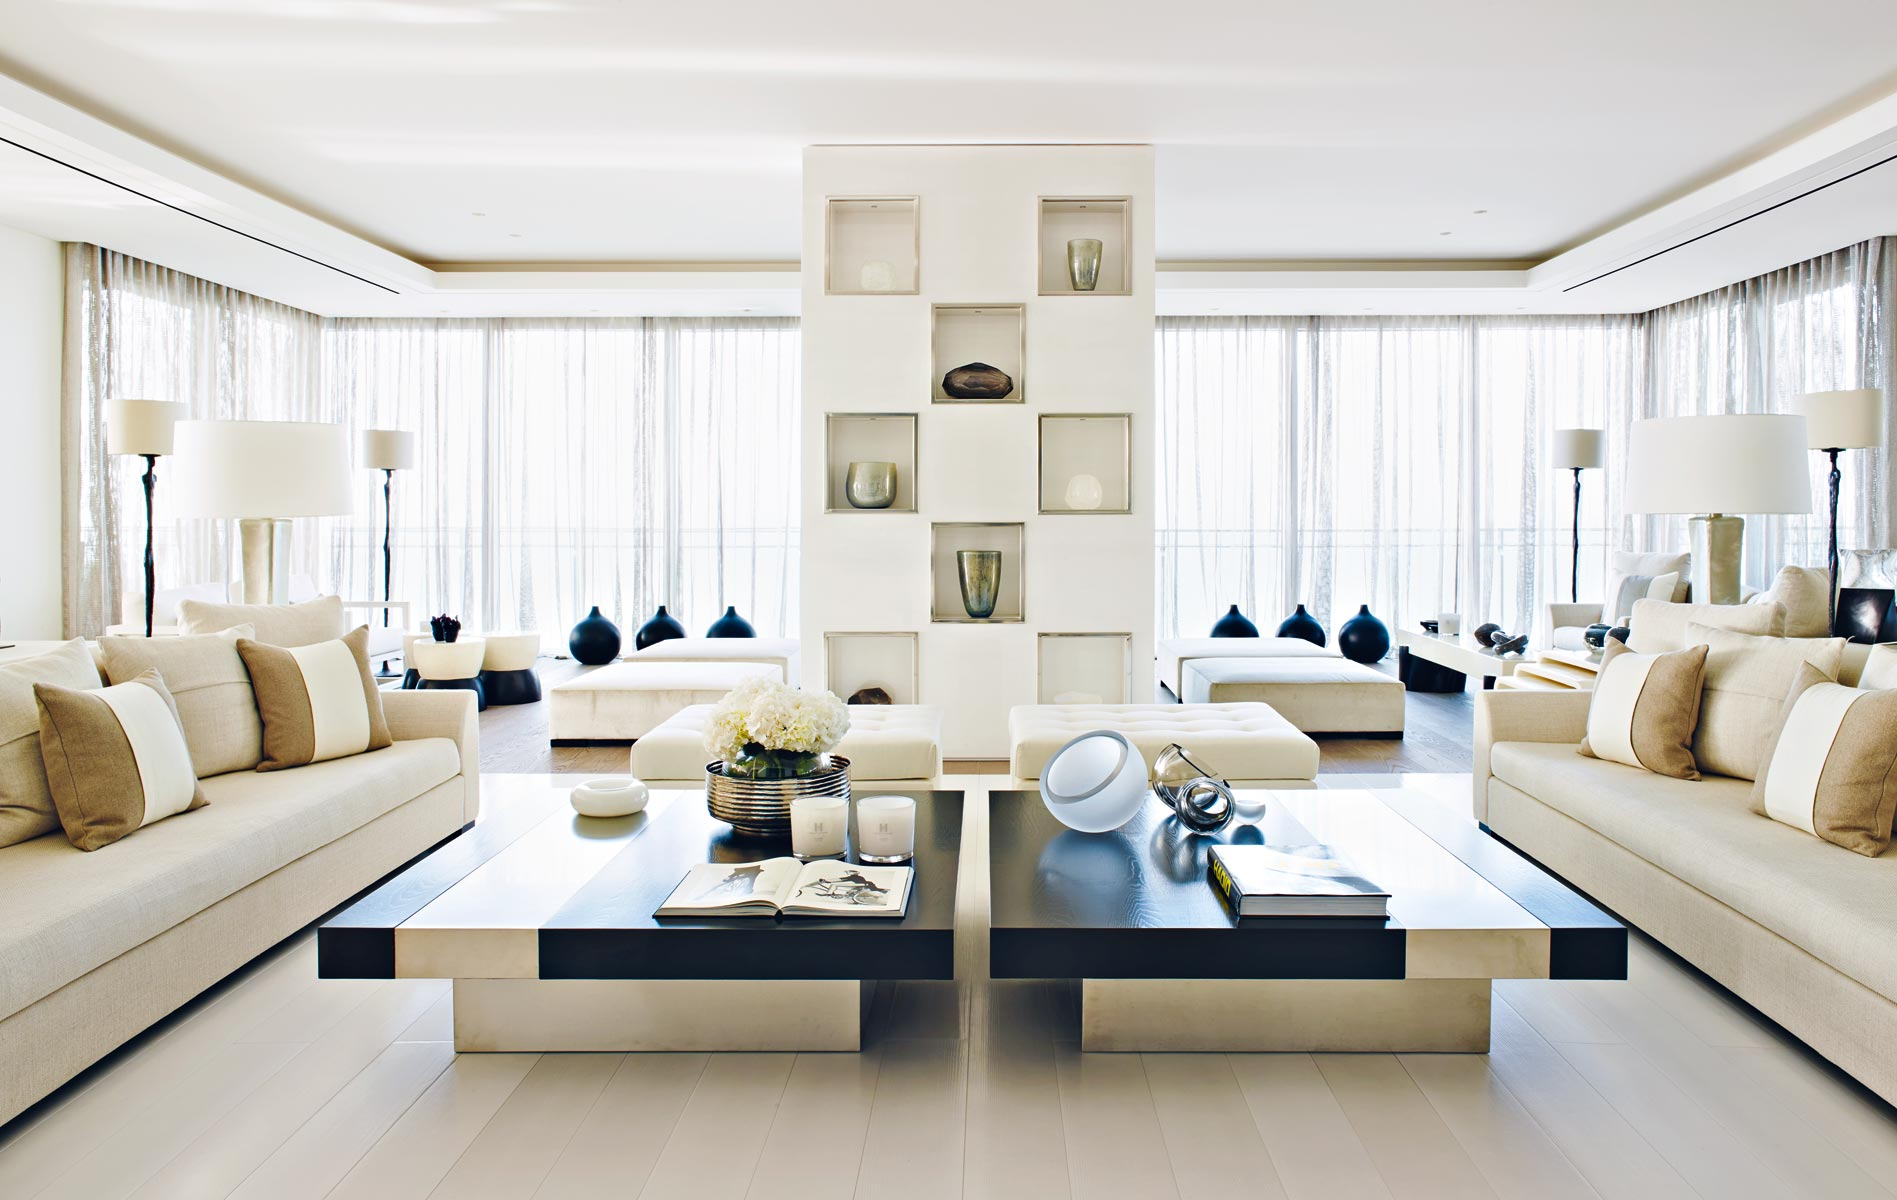 Top 10 kelly hoppen design ideas for Interior designs of room